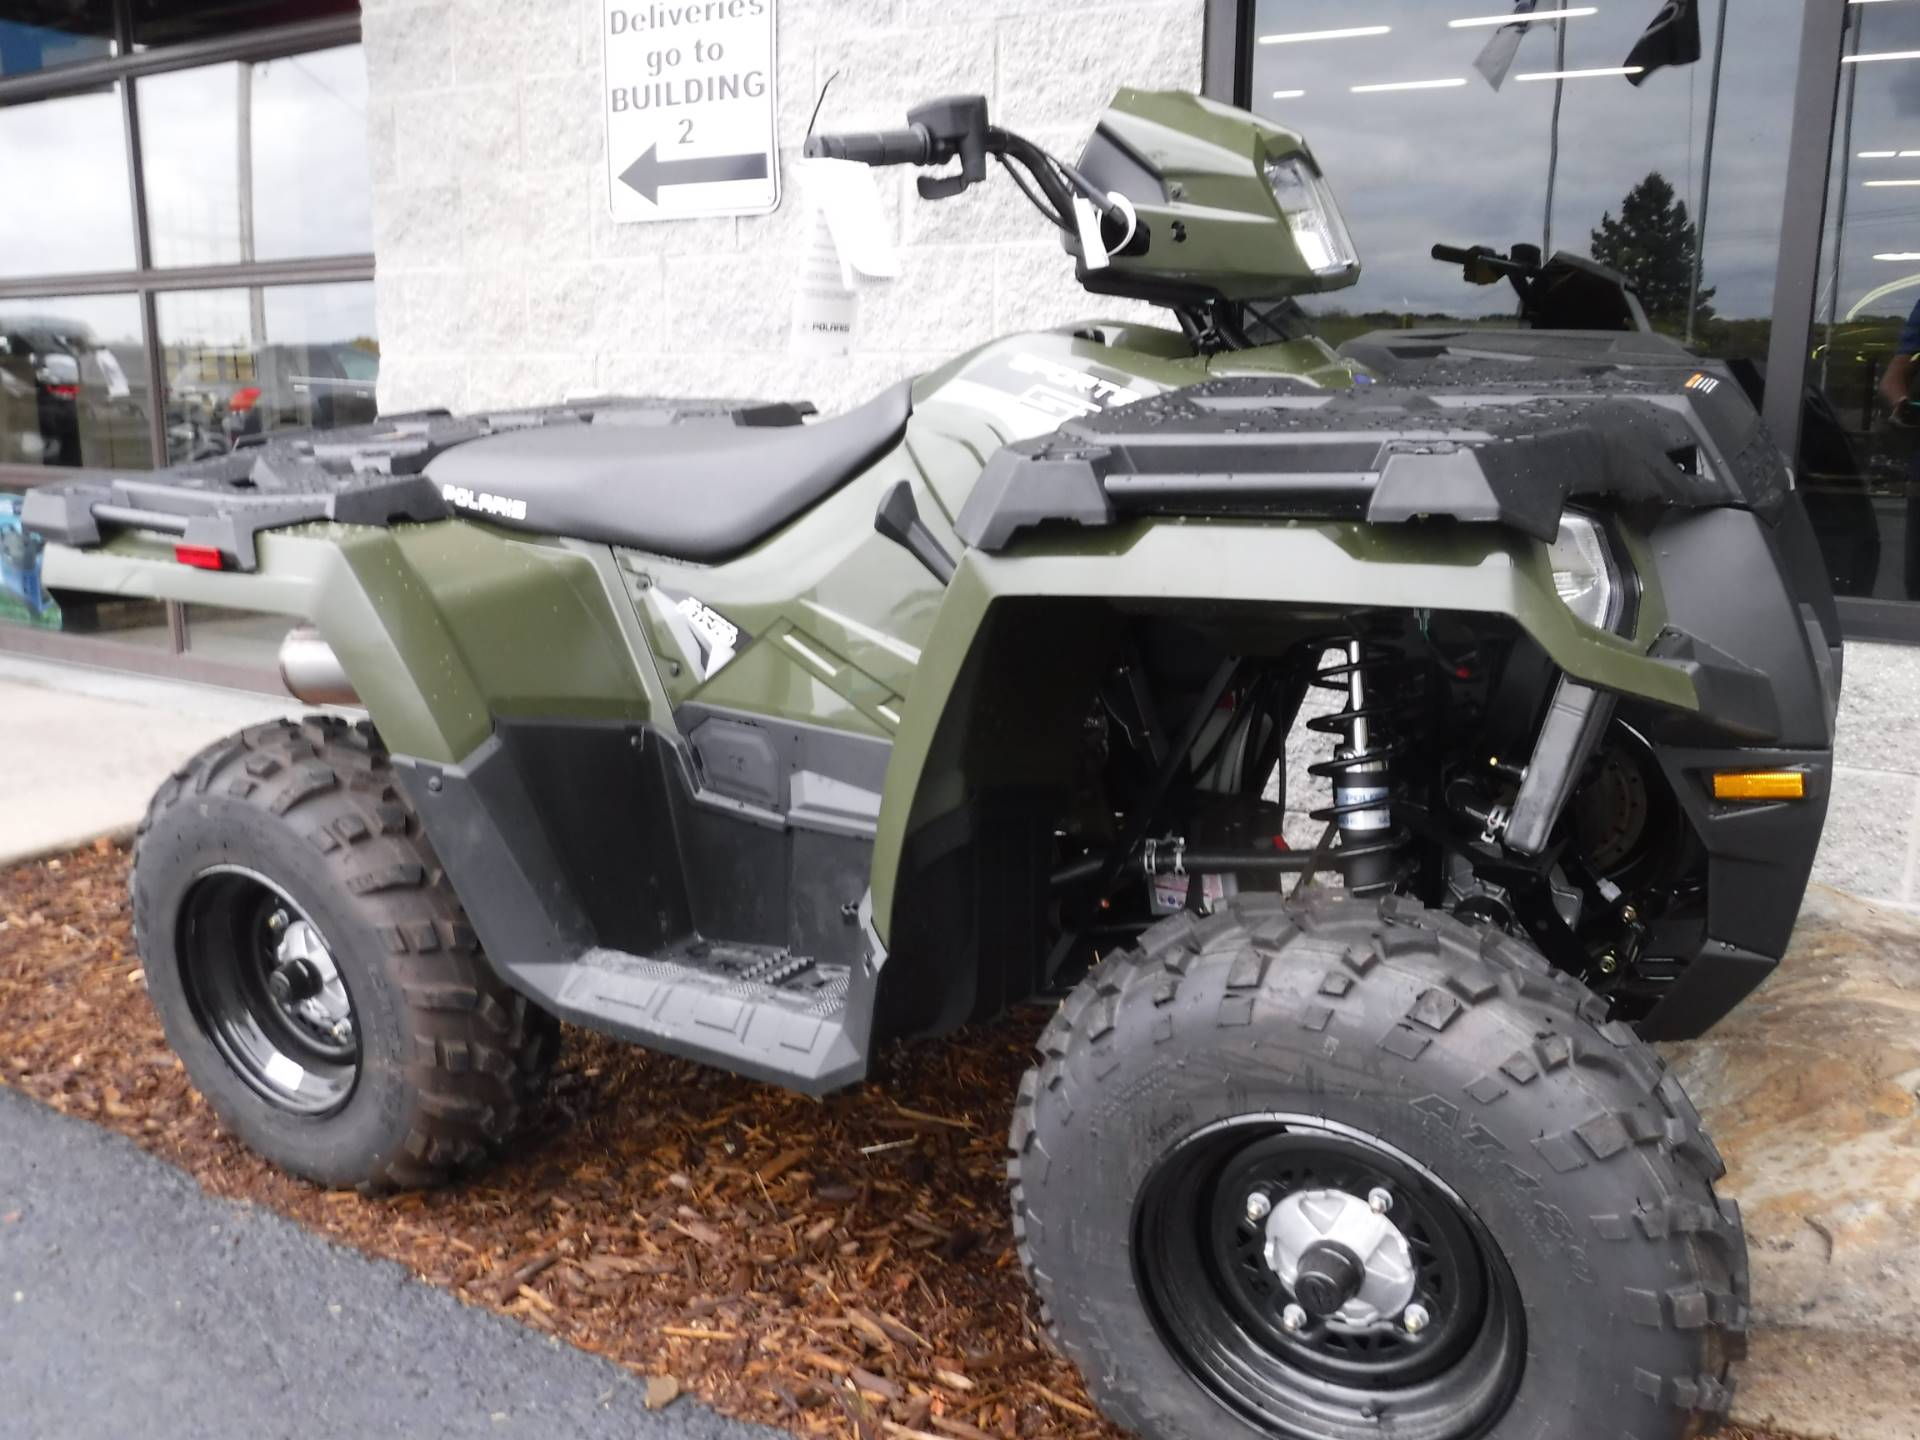 2020 Polaris Sportsman 570 in Hermitage, Pennsylvania - Photo 3